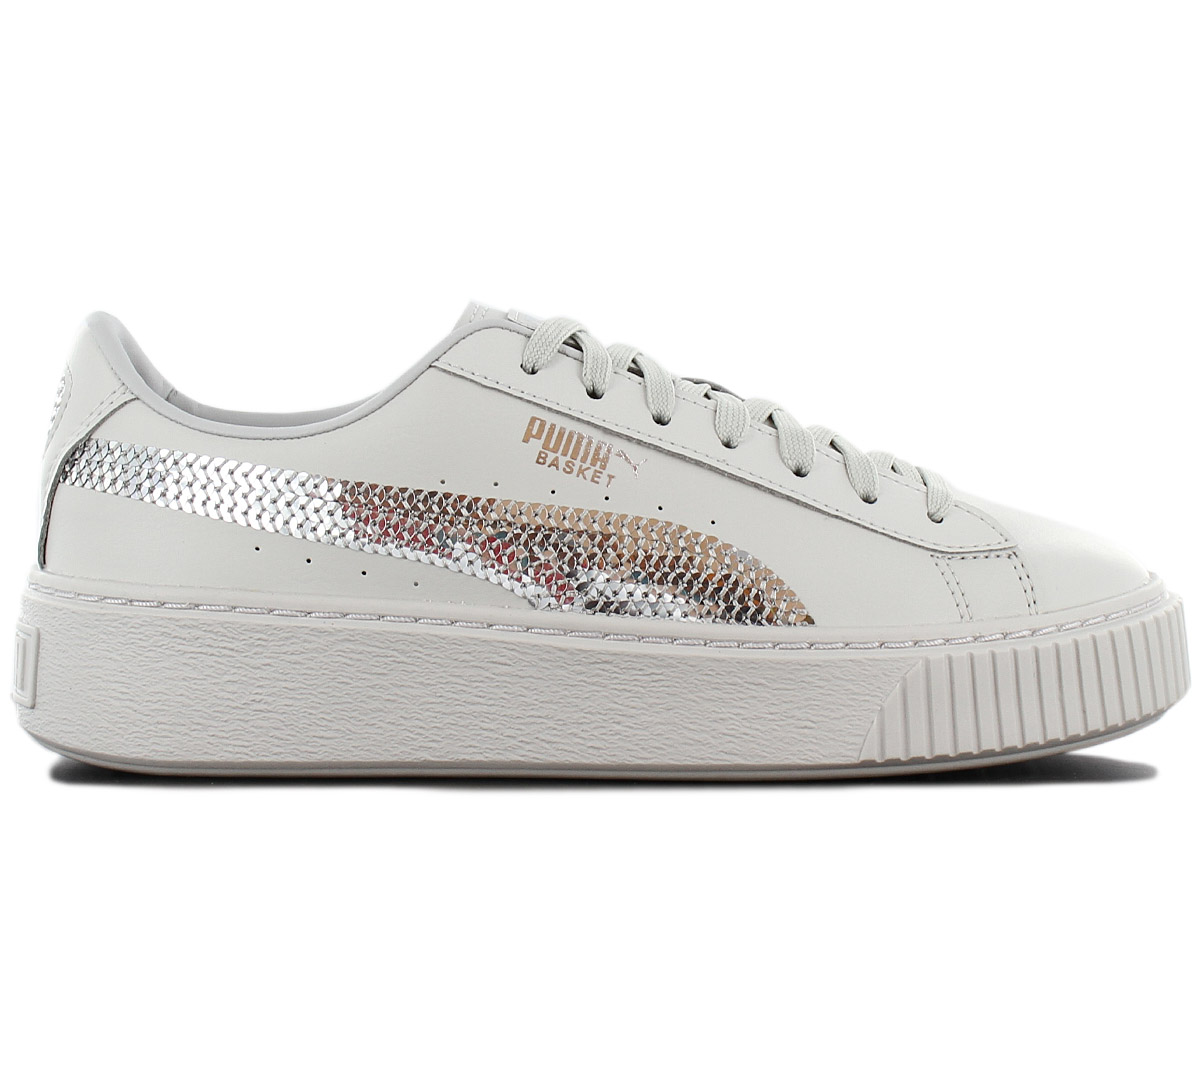 huge discount 554bc d1775 Details about Puma Platform Basket Bling Sneaker Women's Platform Shoes  367237-02 Grey New